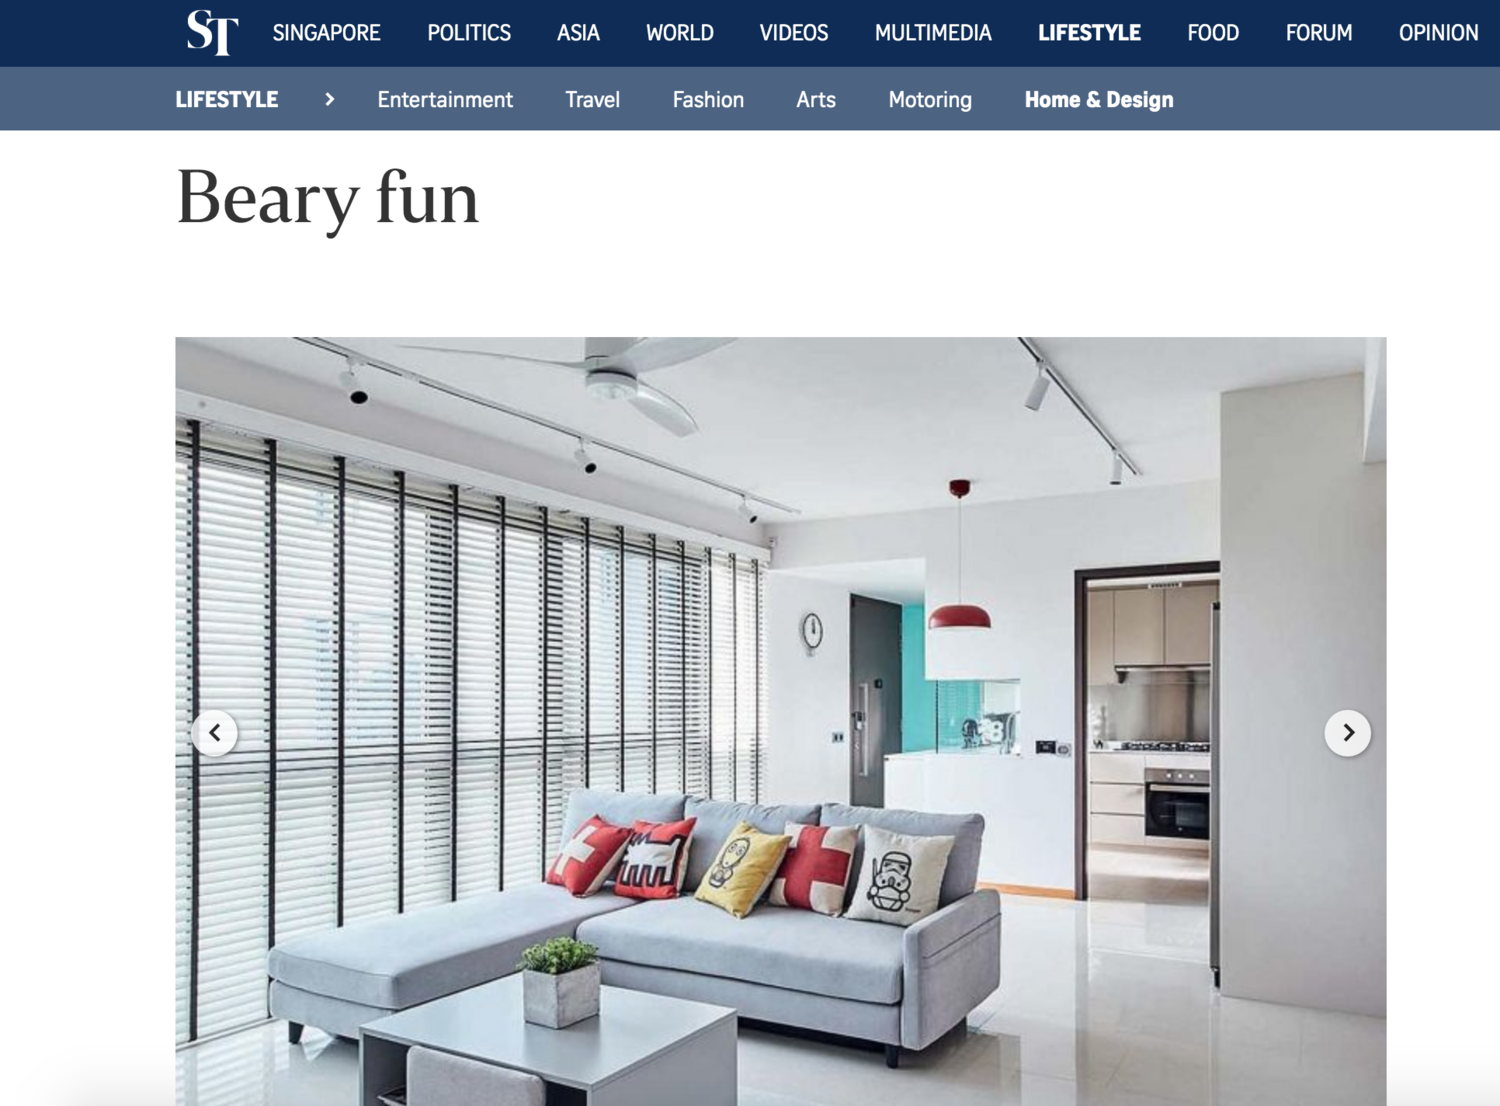 Straits Times Online - https://www.straitstimes.com/lifestyle/home-design/beary-fun